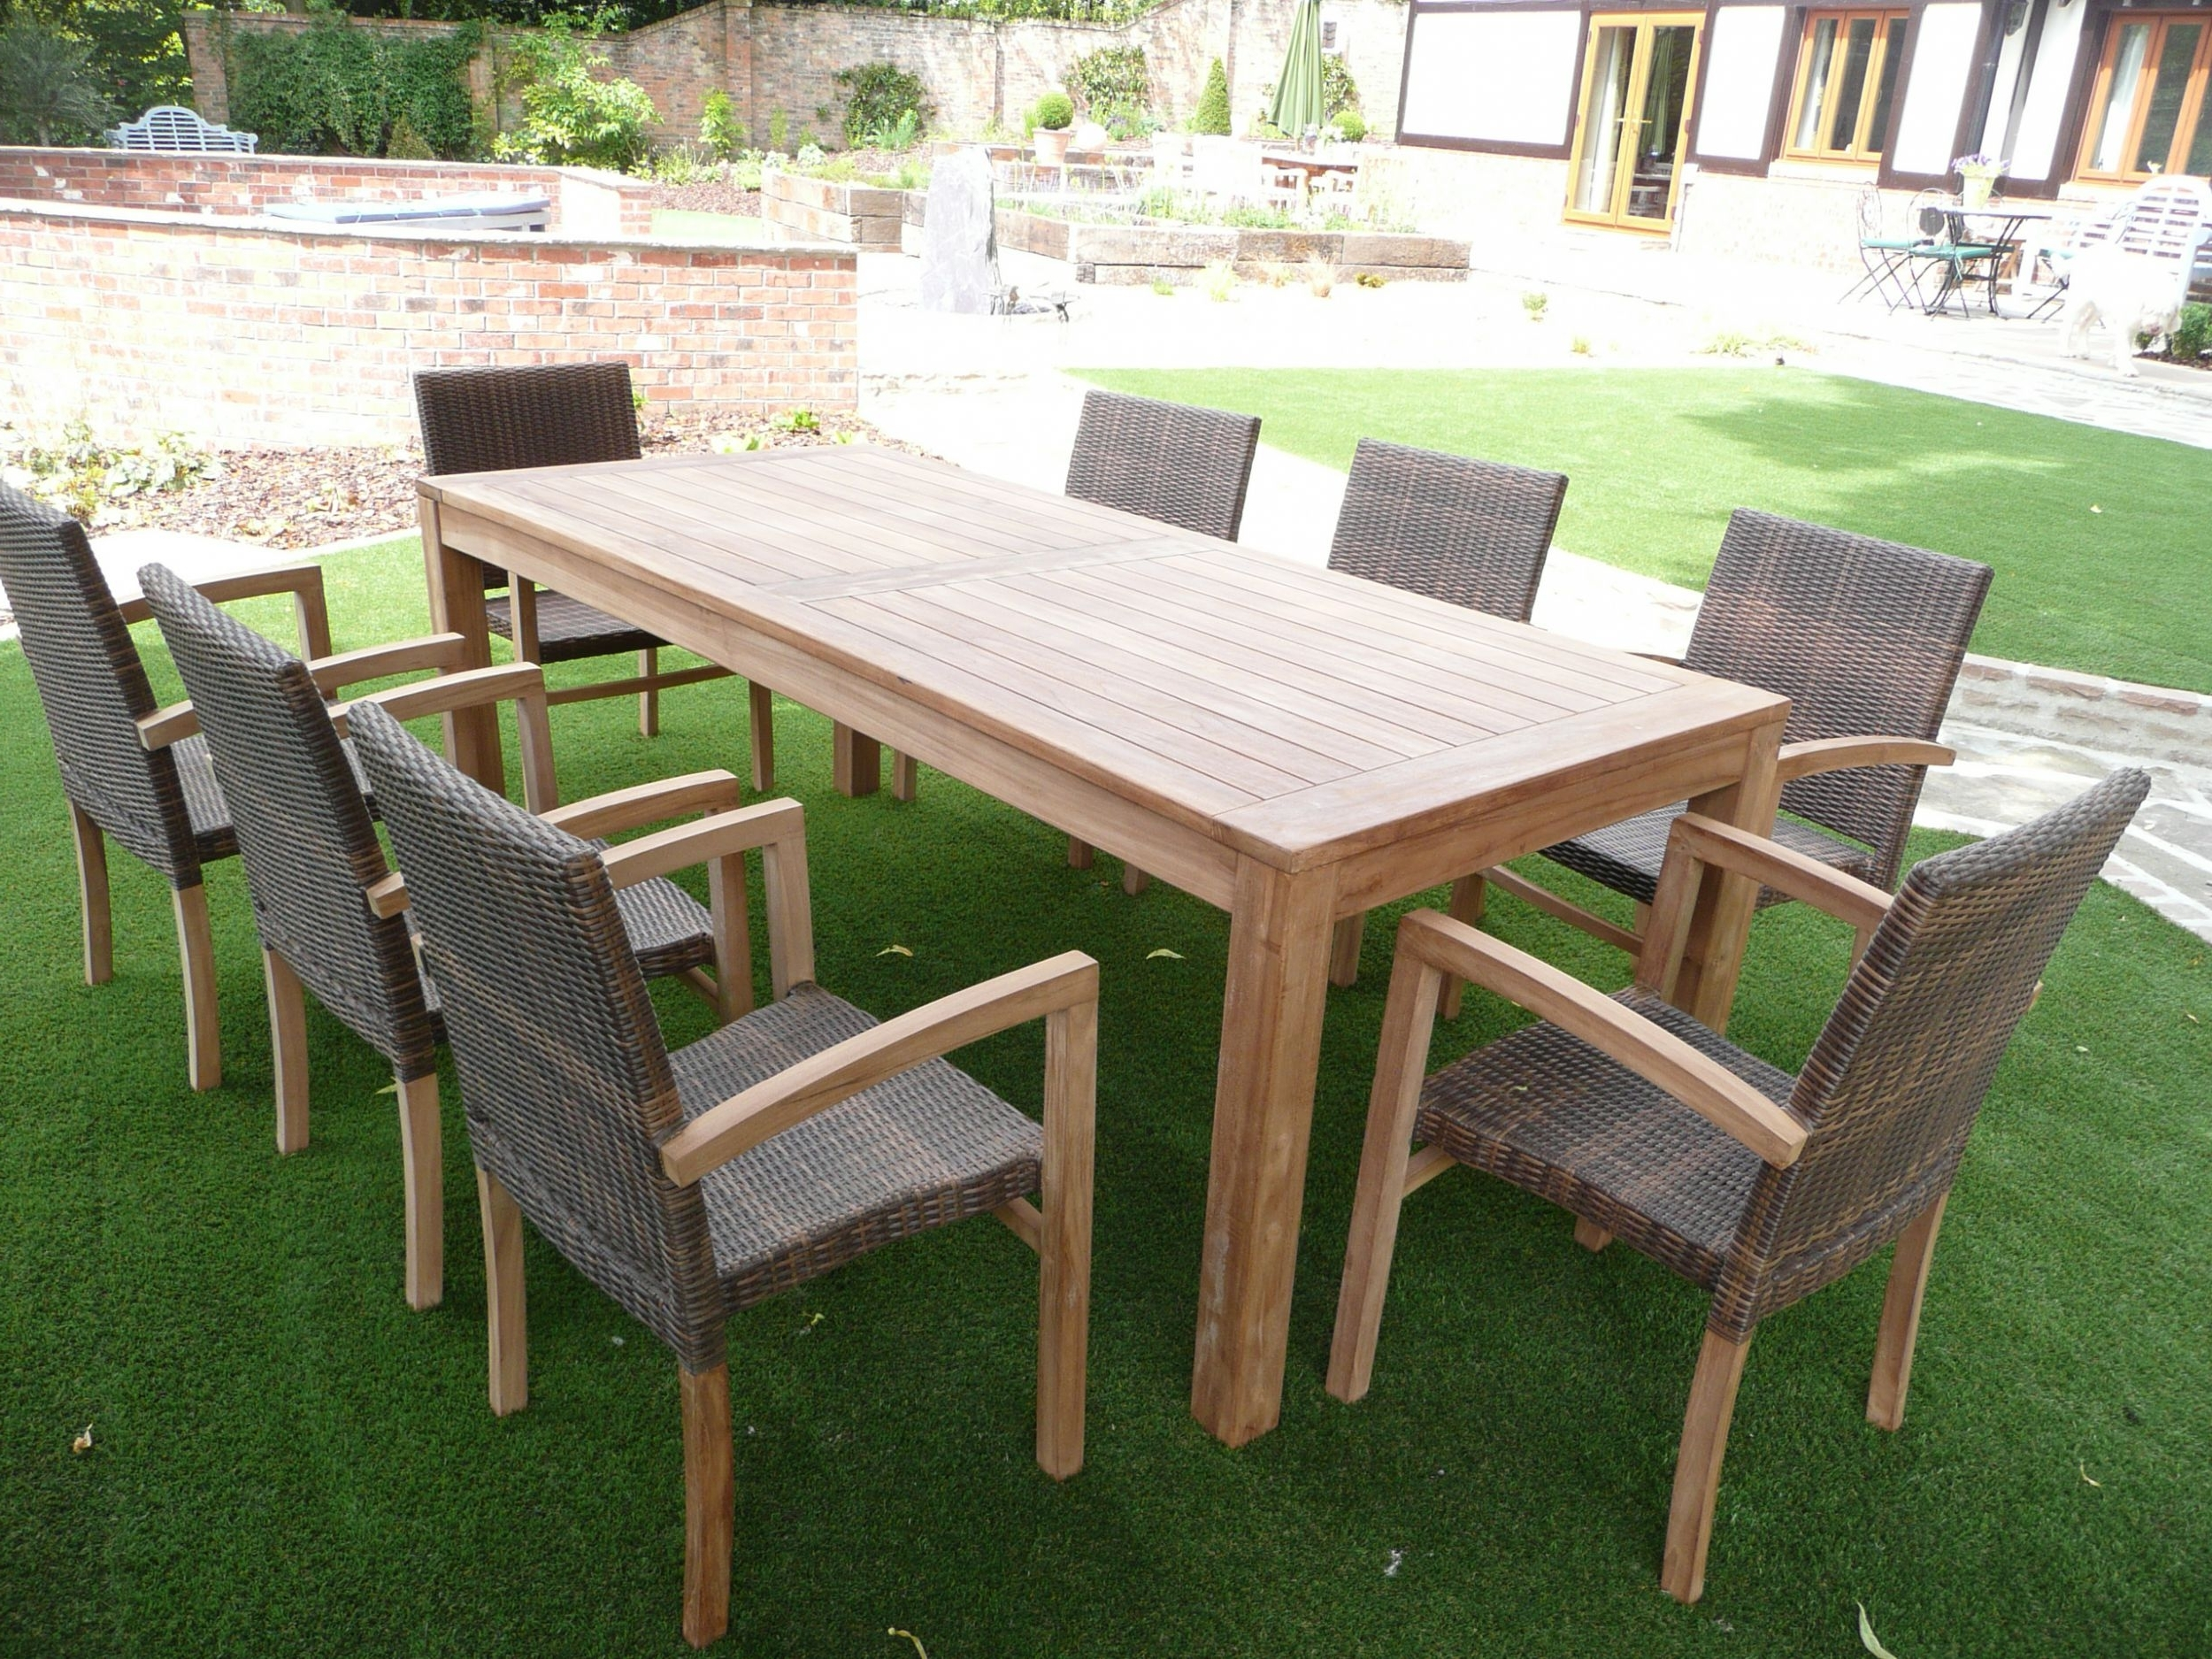 Most Recent Outdoor Dining Table And Chairs Sets Regarding Amazing Open Garden With Green Grasses And Wicker Dining Sets Feat (View 10 of 25)